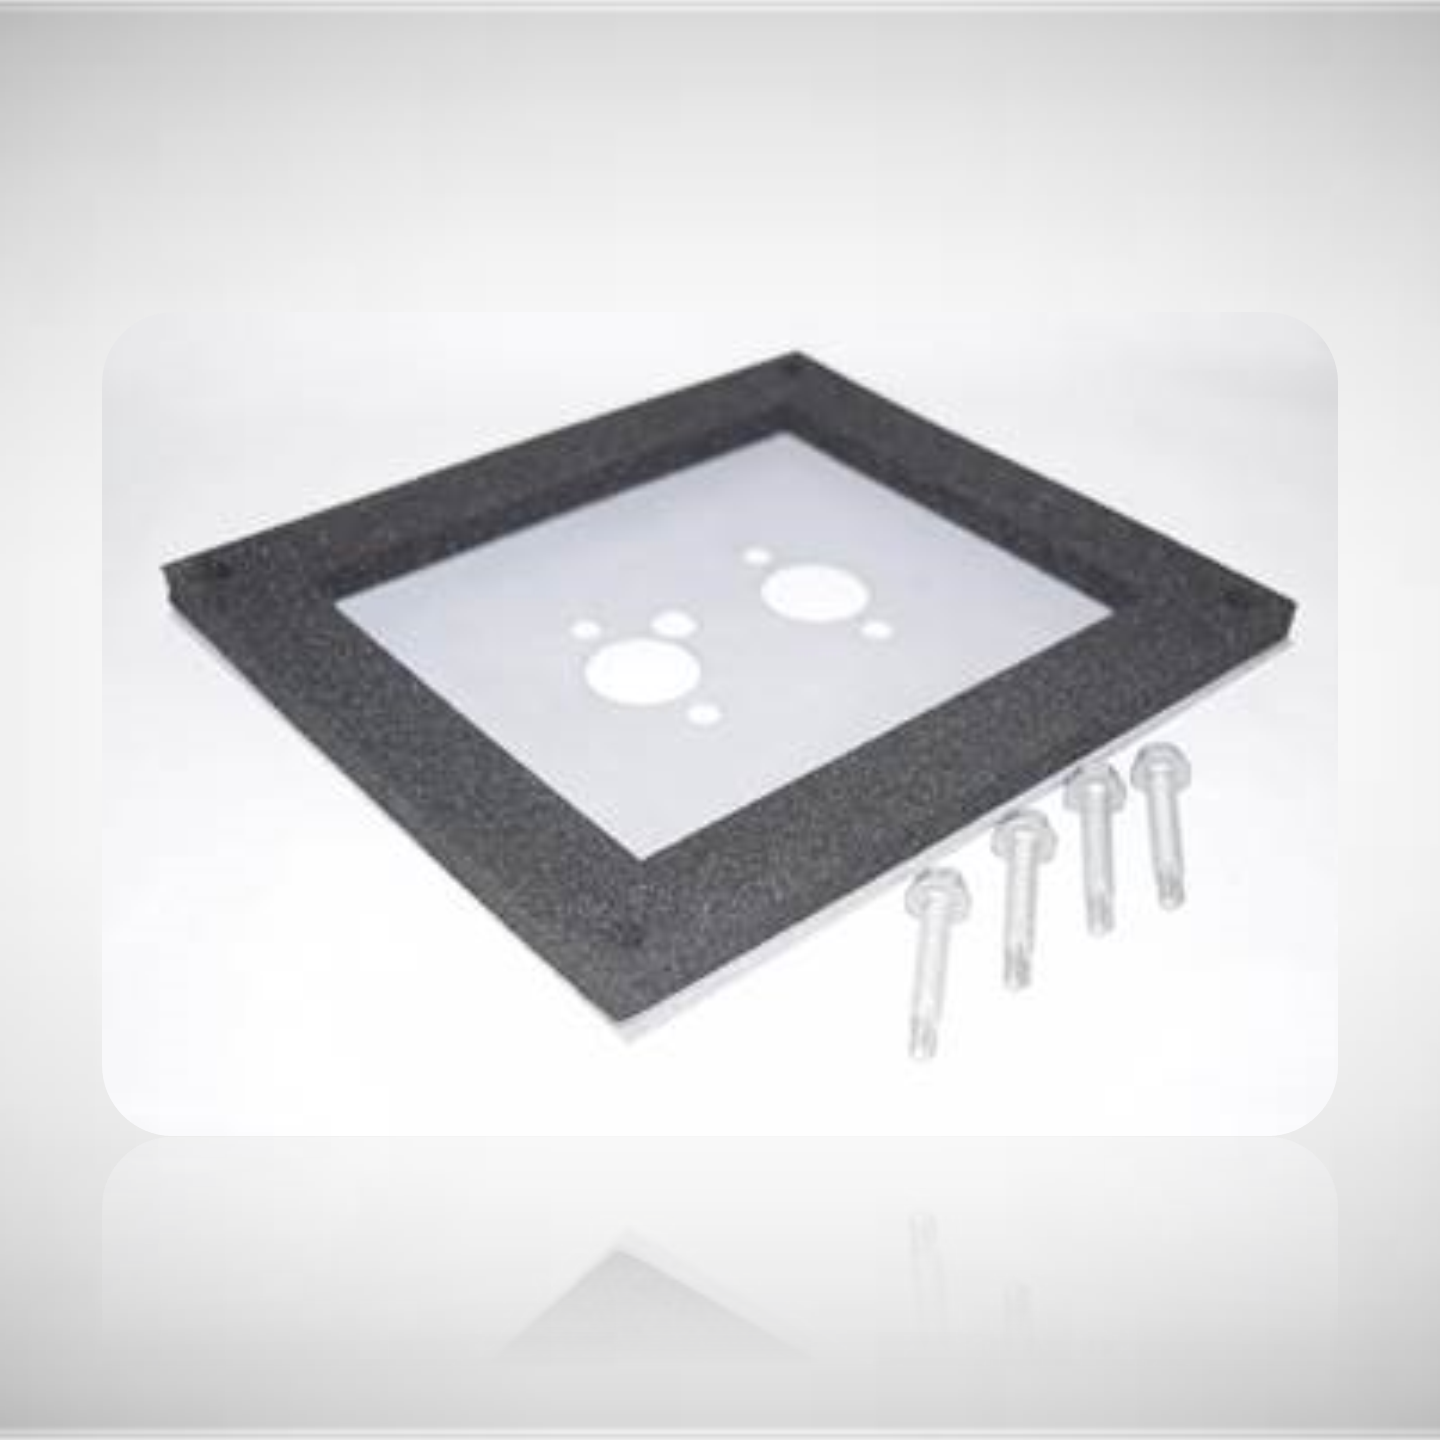 Mounting Plate with Seal for D2 & D4 Heaters